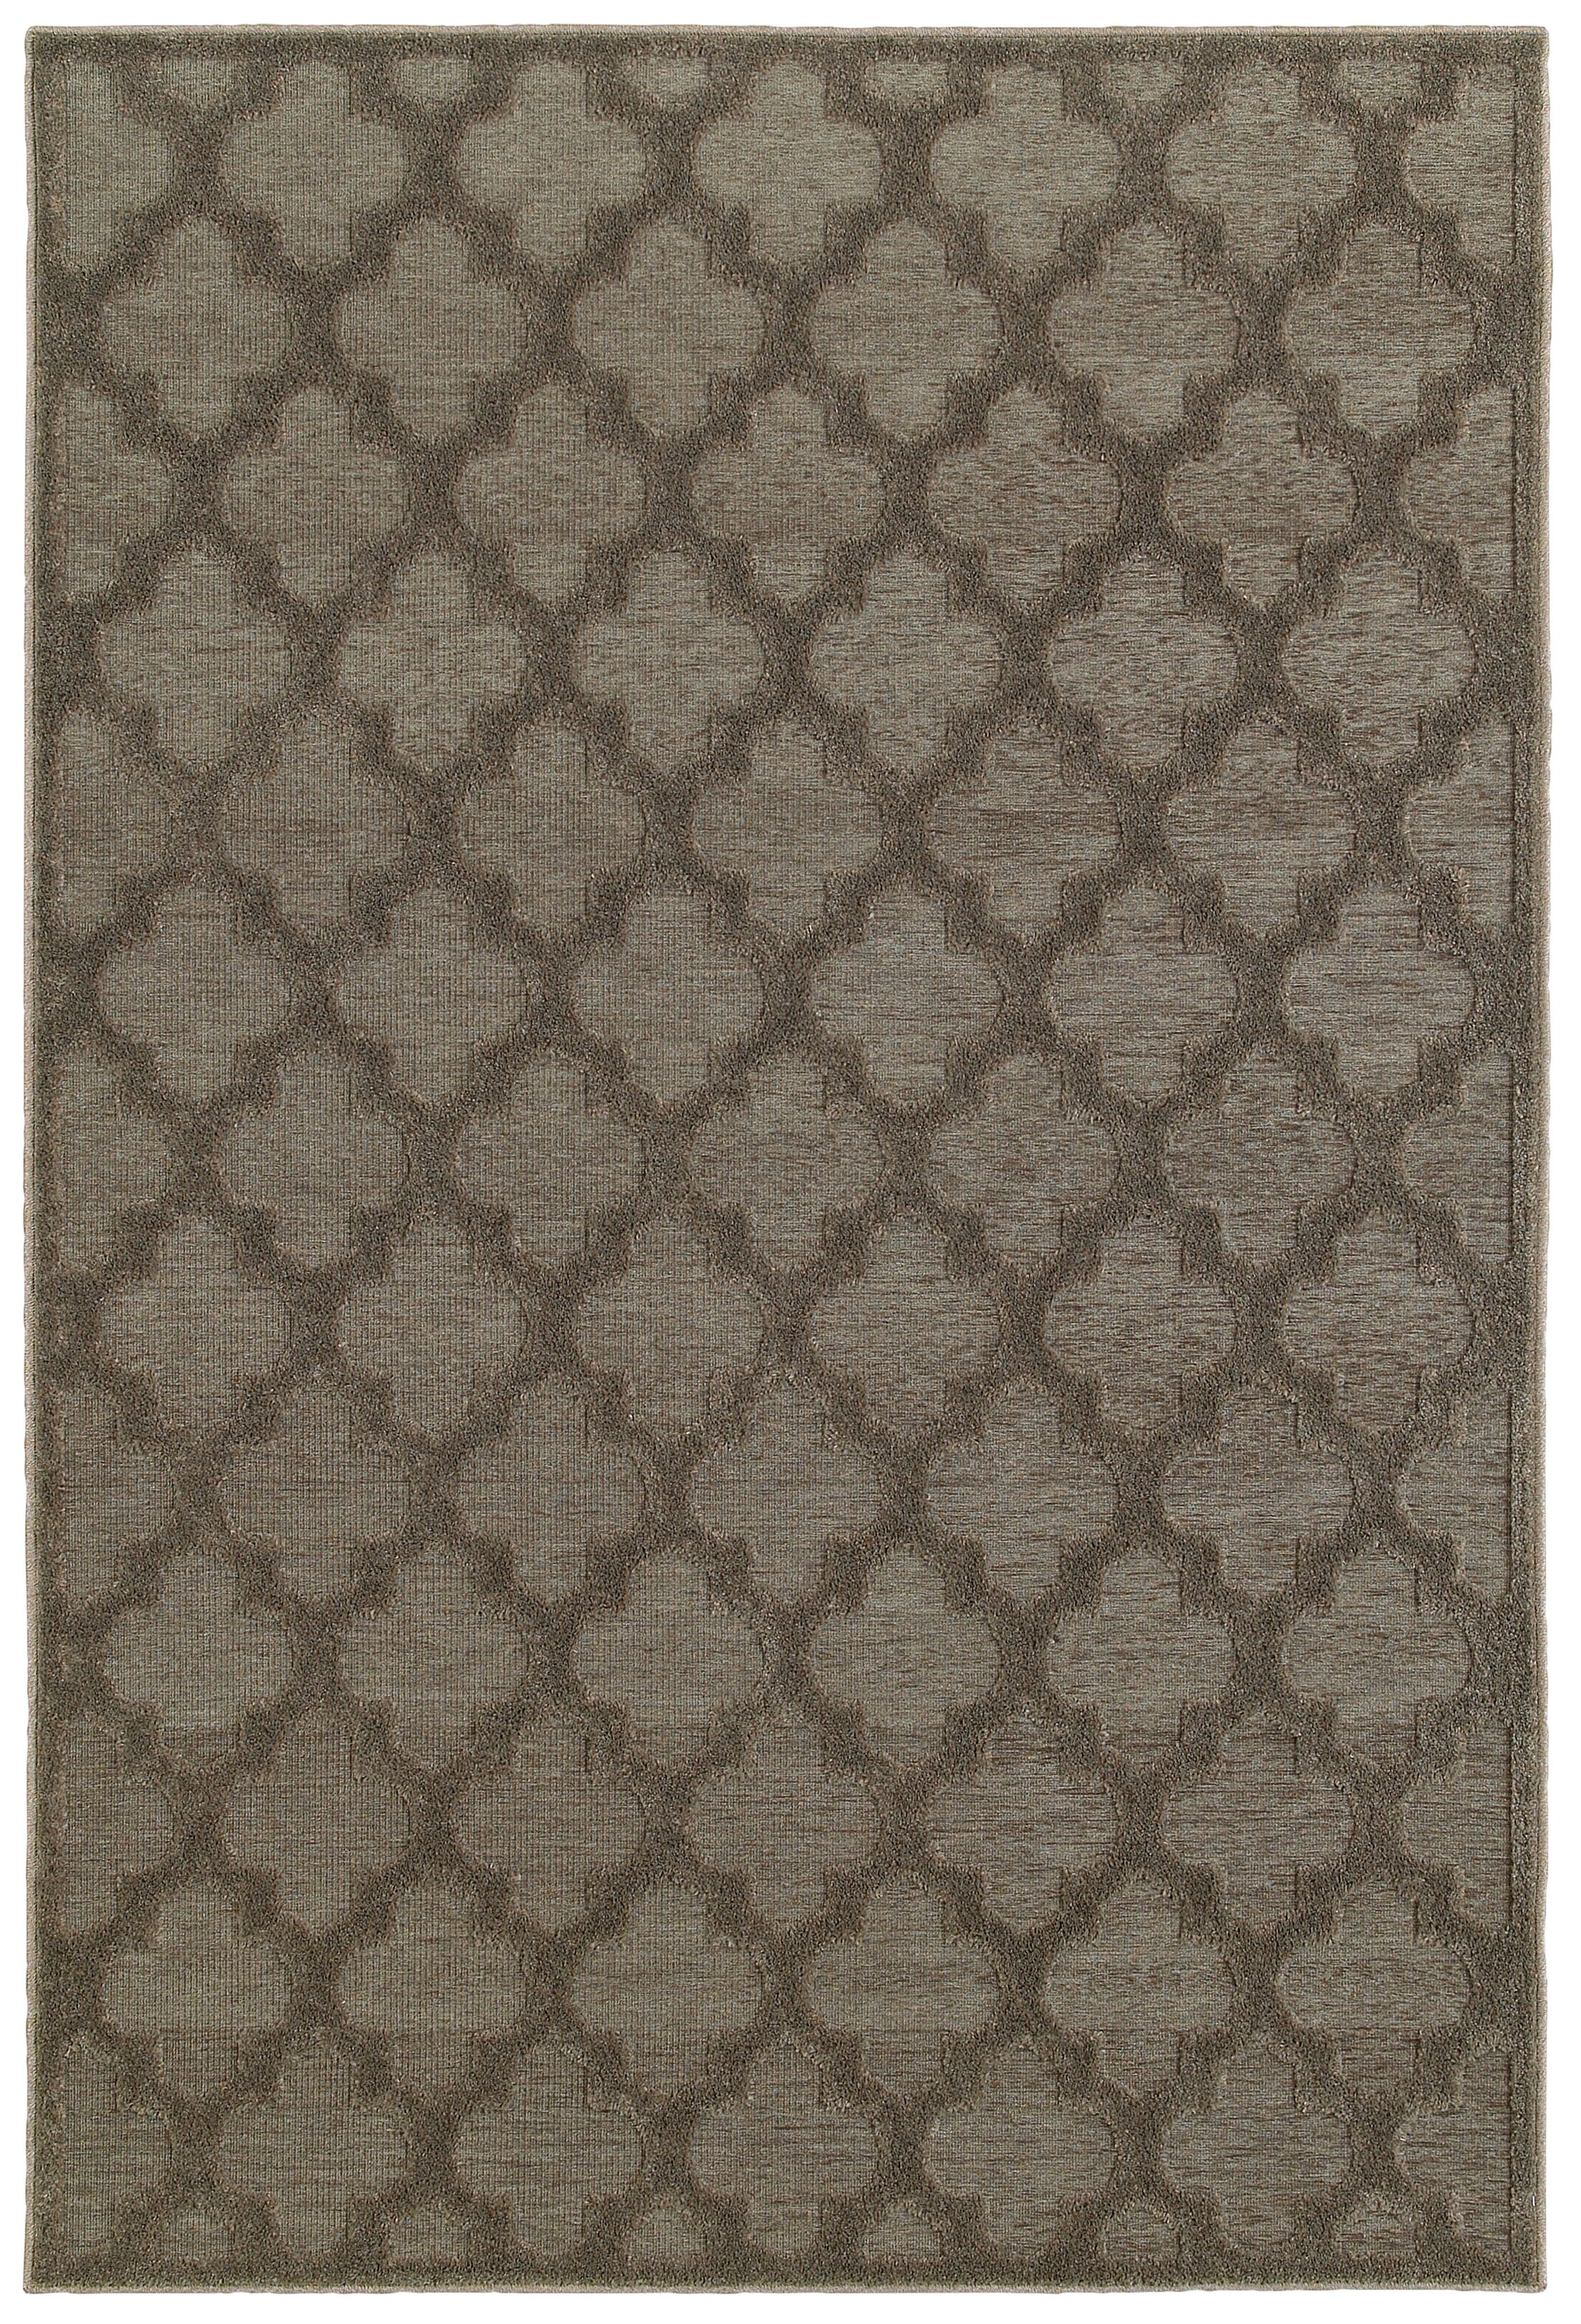 Lacon Brown Area Rug Rug Size: Rectangle 7'10